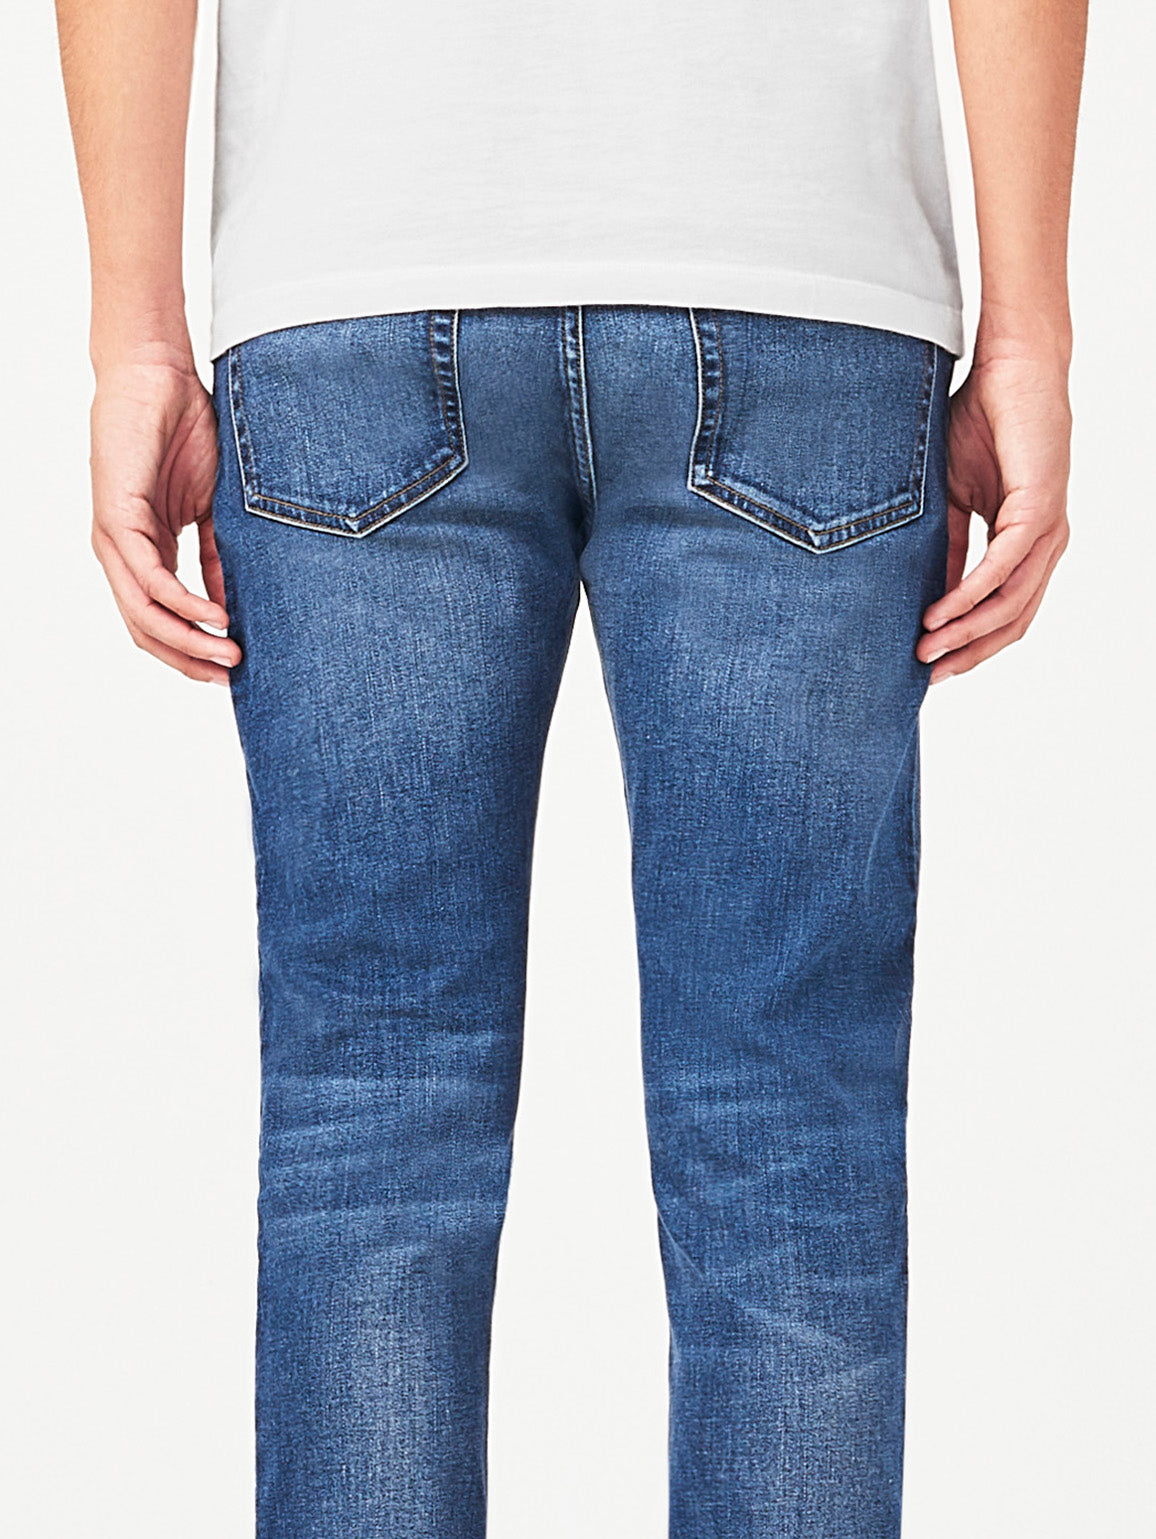 Hunter Skinny | Origin DL 1961 Denim